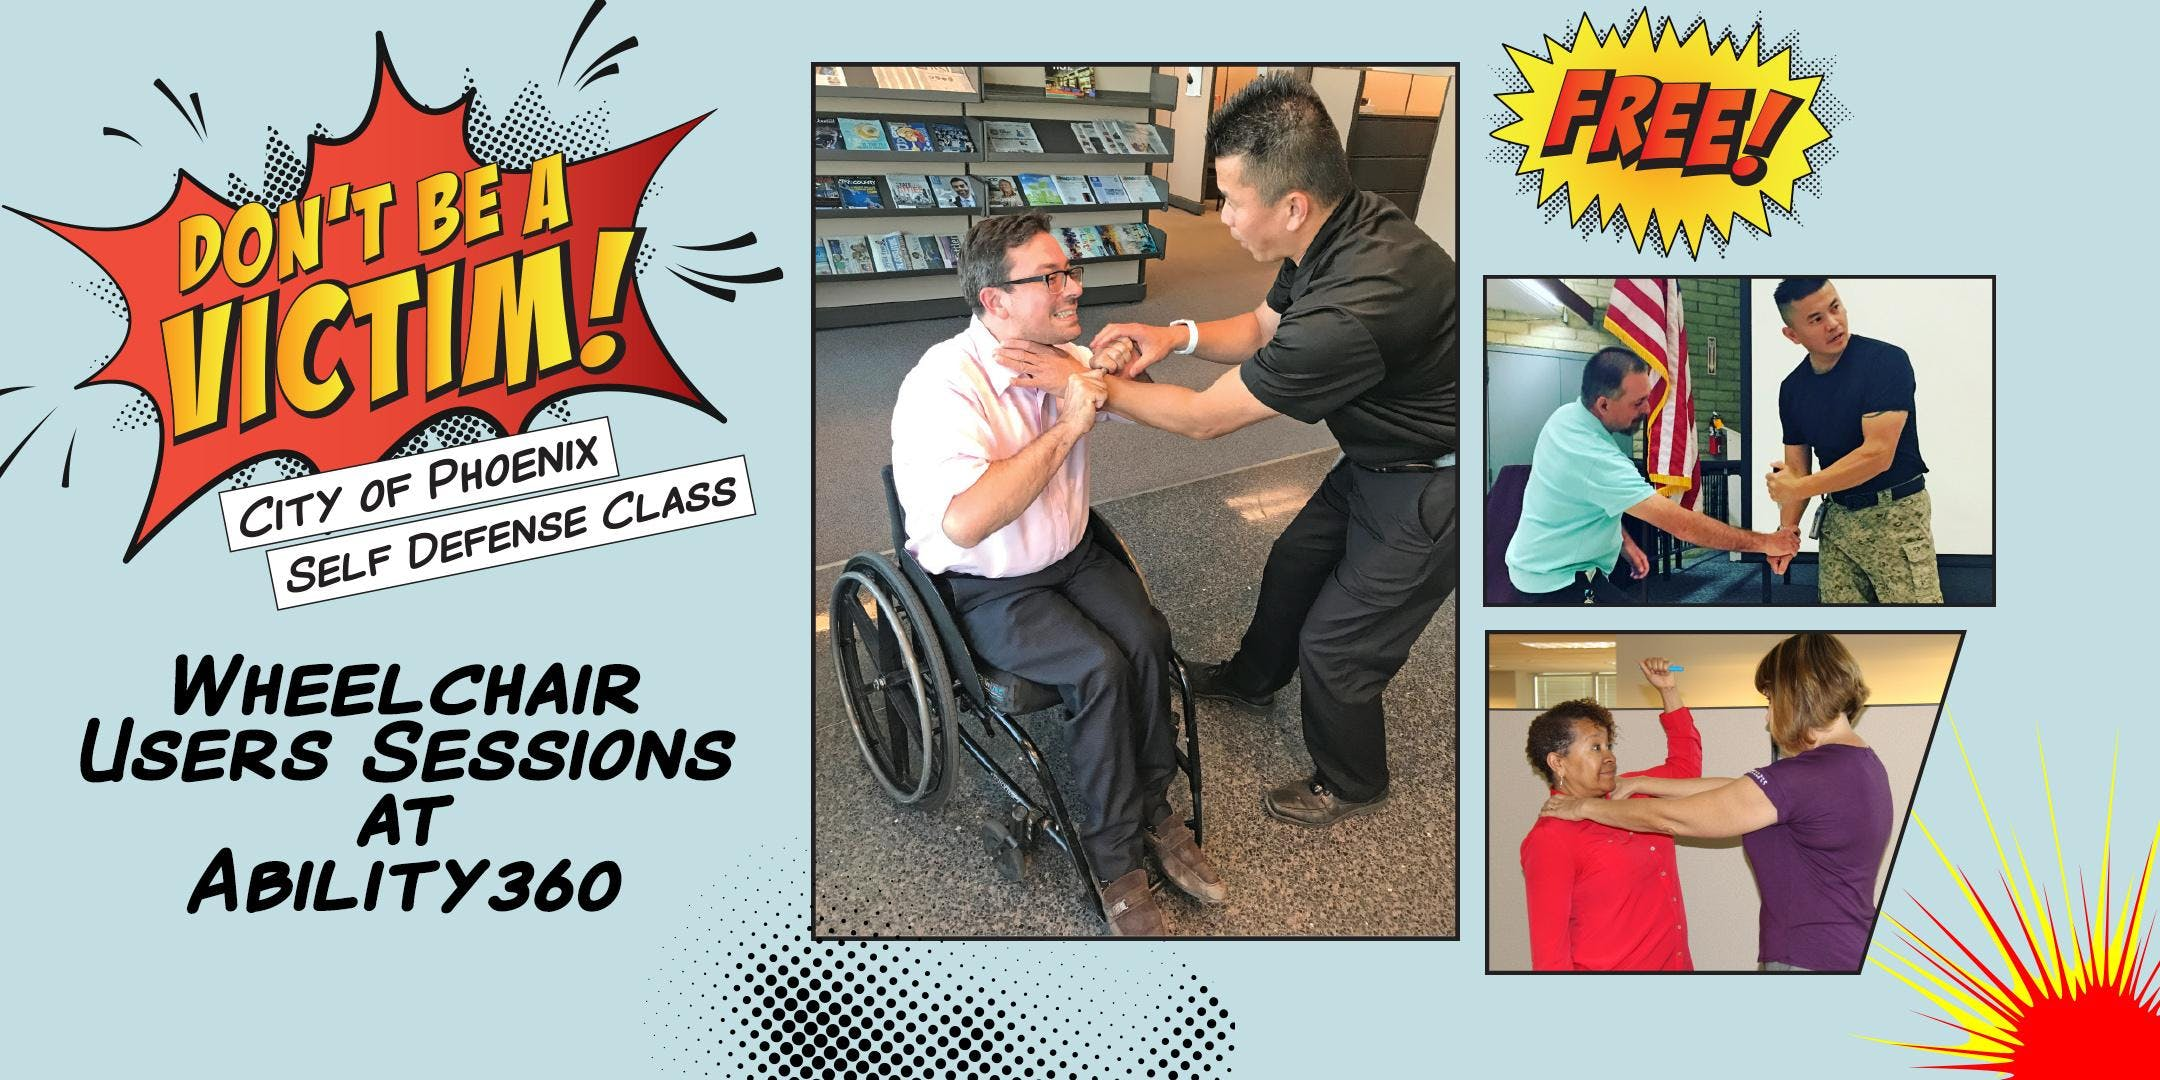 Don't Be a Victim- Self Defense Class for Wheelchair Users